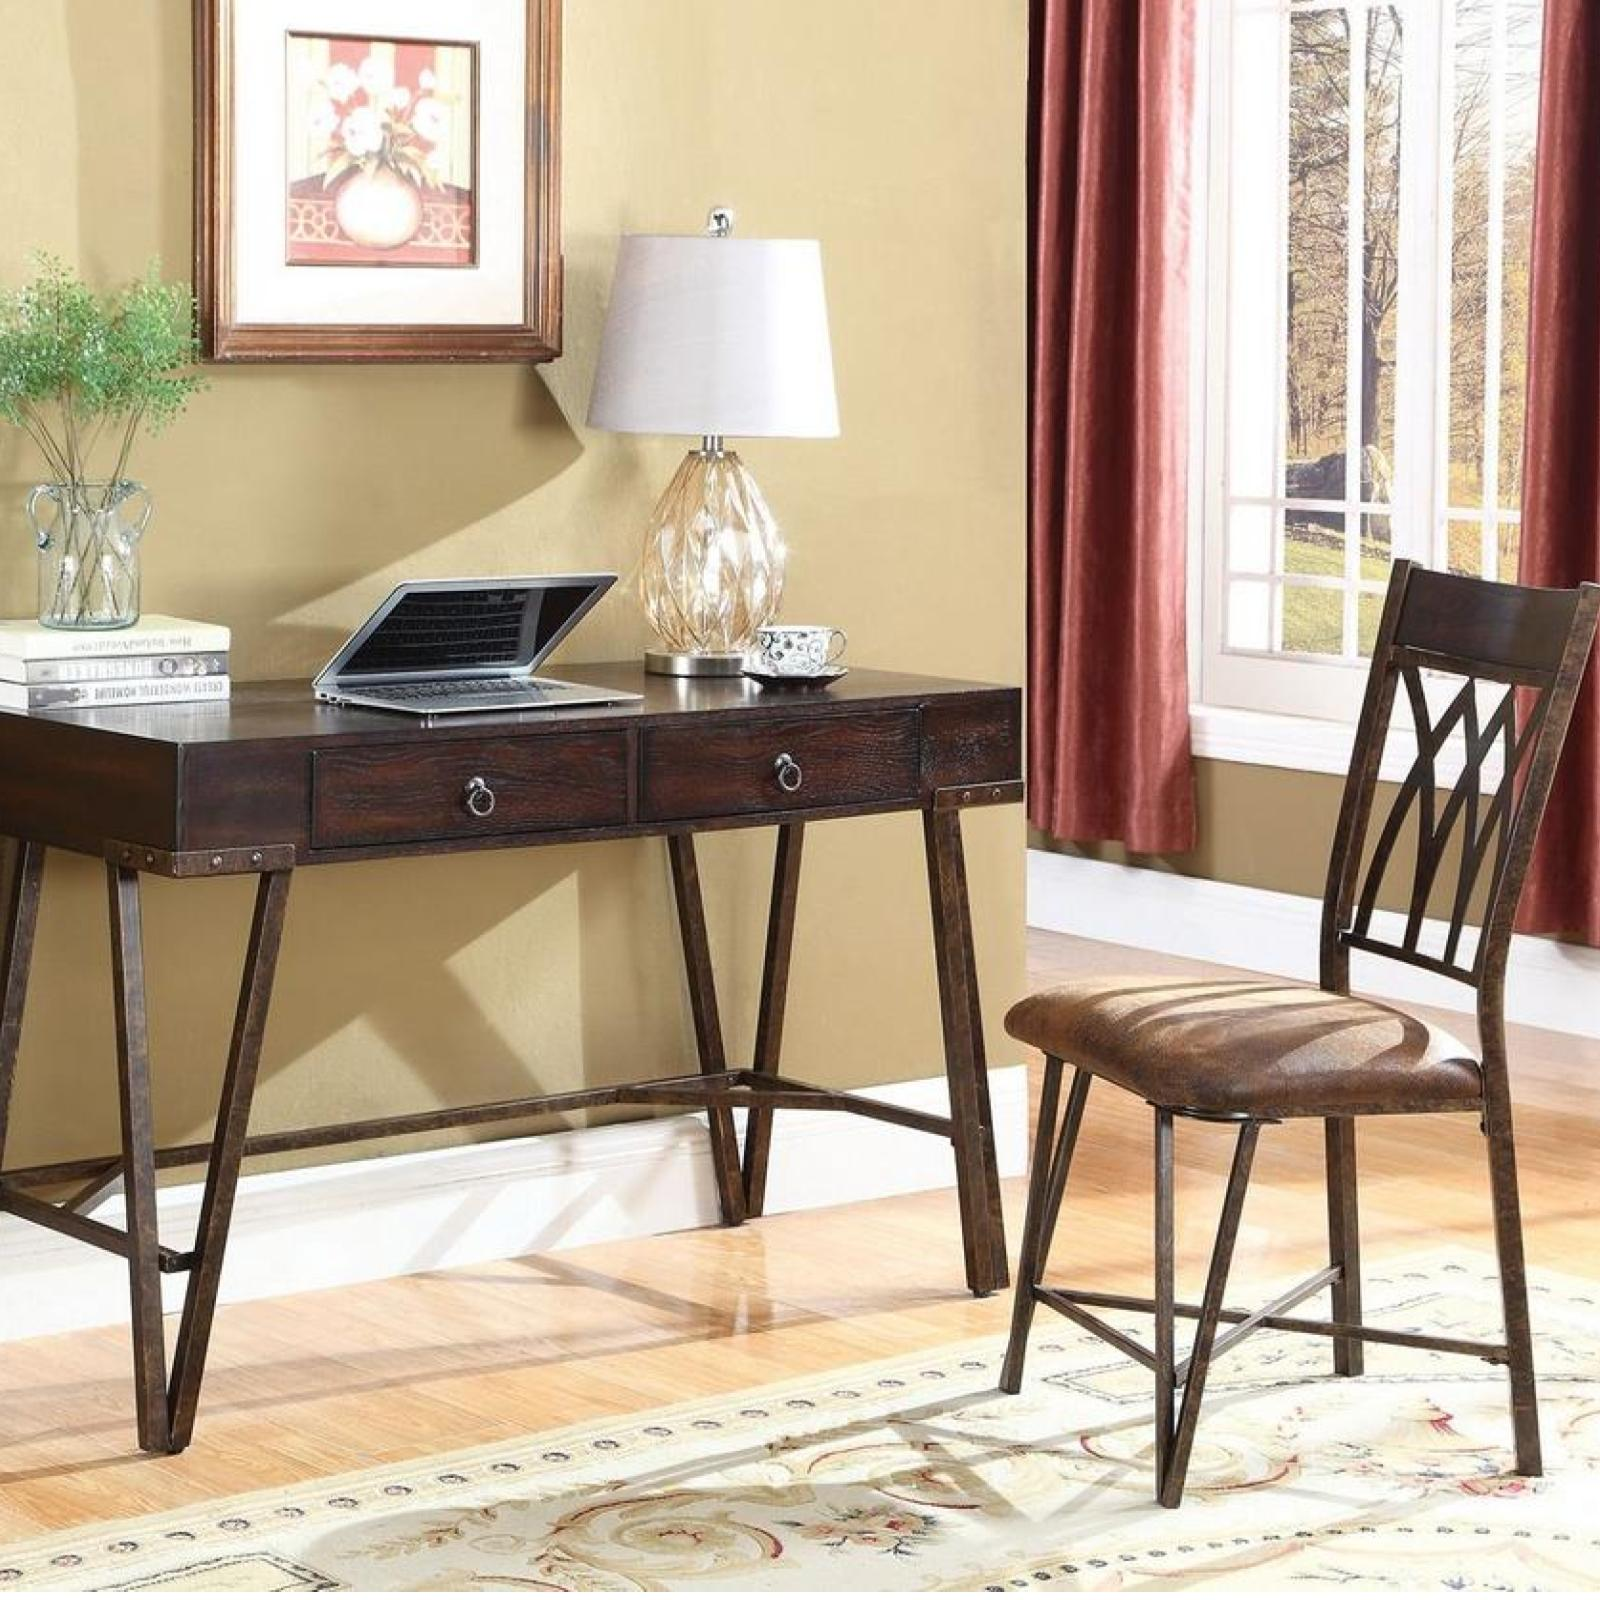 Miraculous 2 Pc Brushed Pecan Wood Antique Brass Metal Desk Chair Set Dailytribune Chair Design For Home Dailytribuneorg